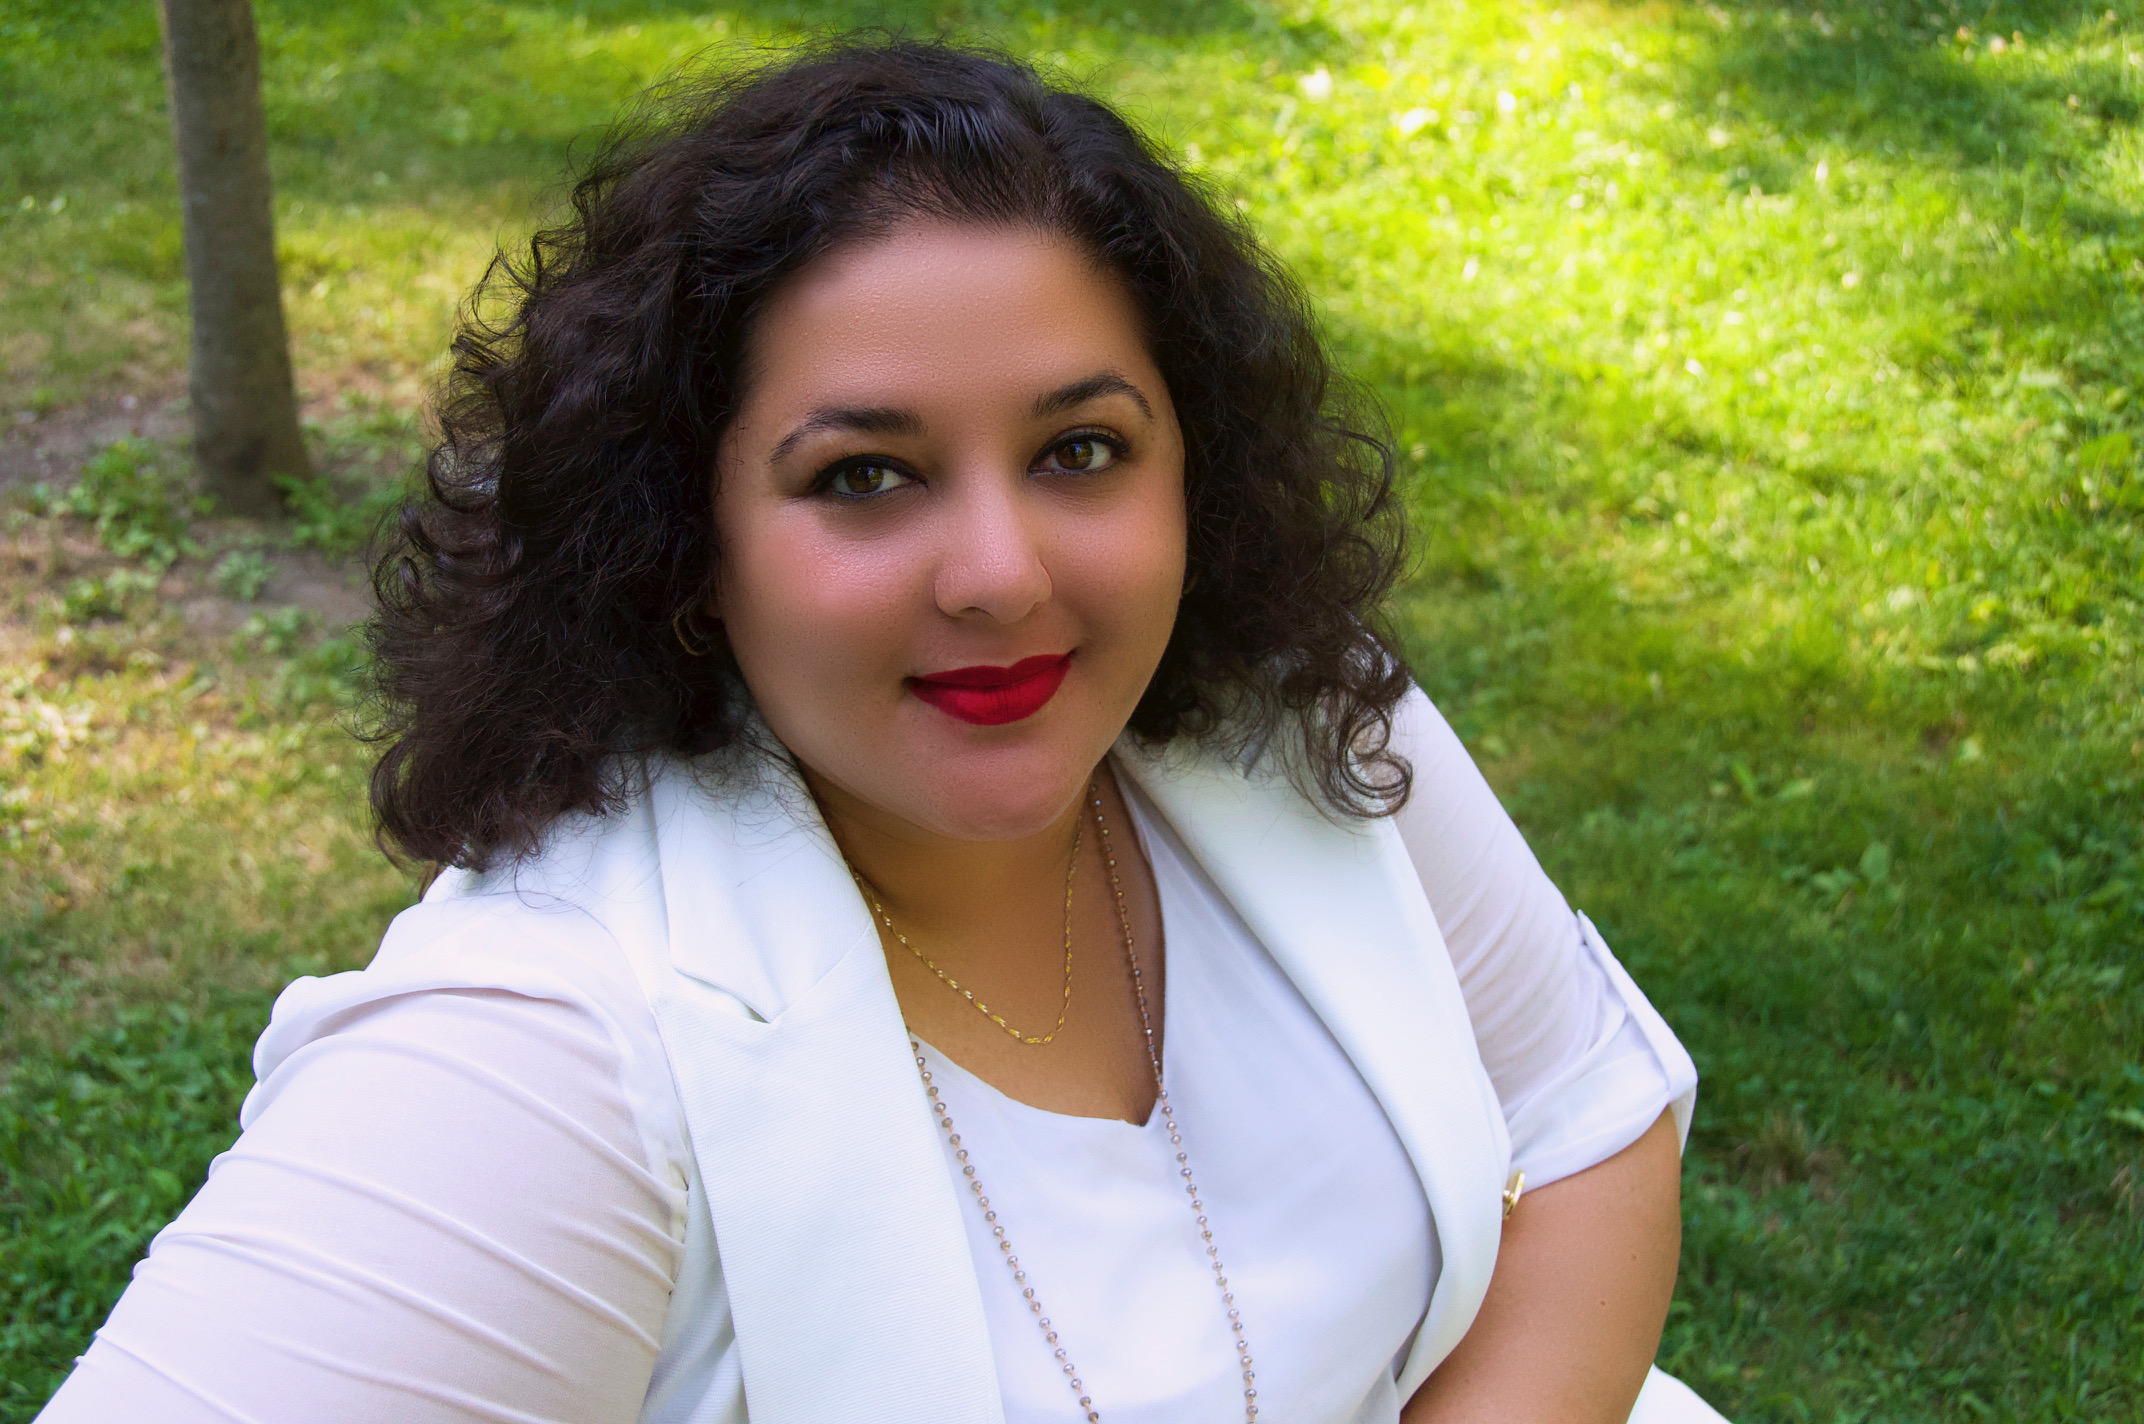 Immigrants and women of colour get a new voice in publishing